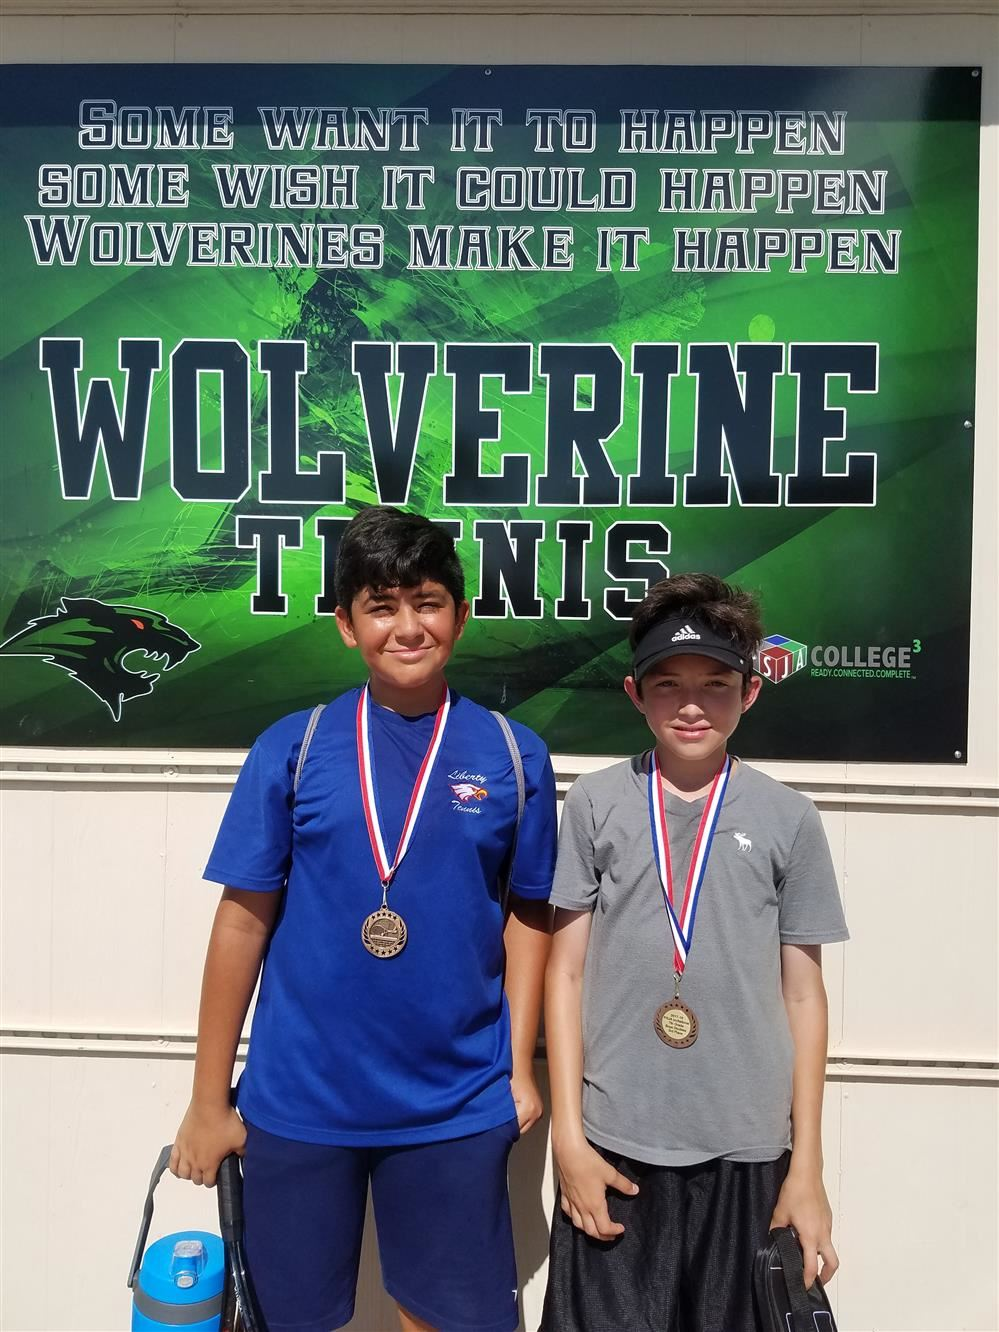 Congratulations goes out to the Liberty Tennis Team for competing at the PSJA 7th and 8th Tennis Tournament on Saturday 11-04-17.